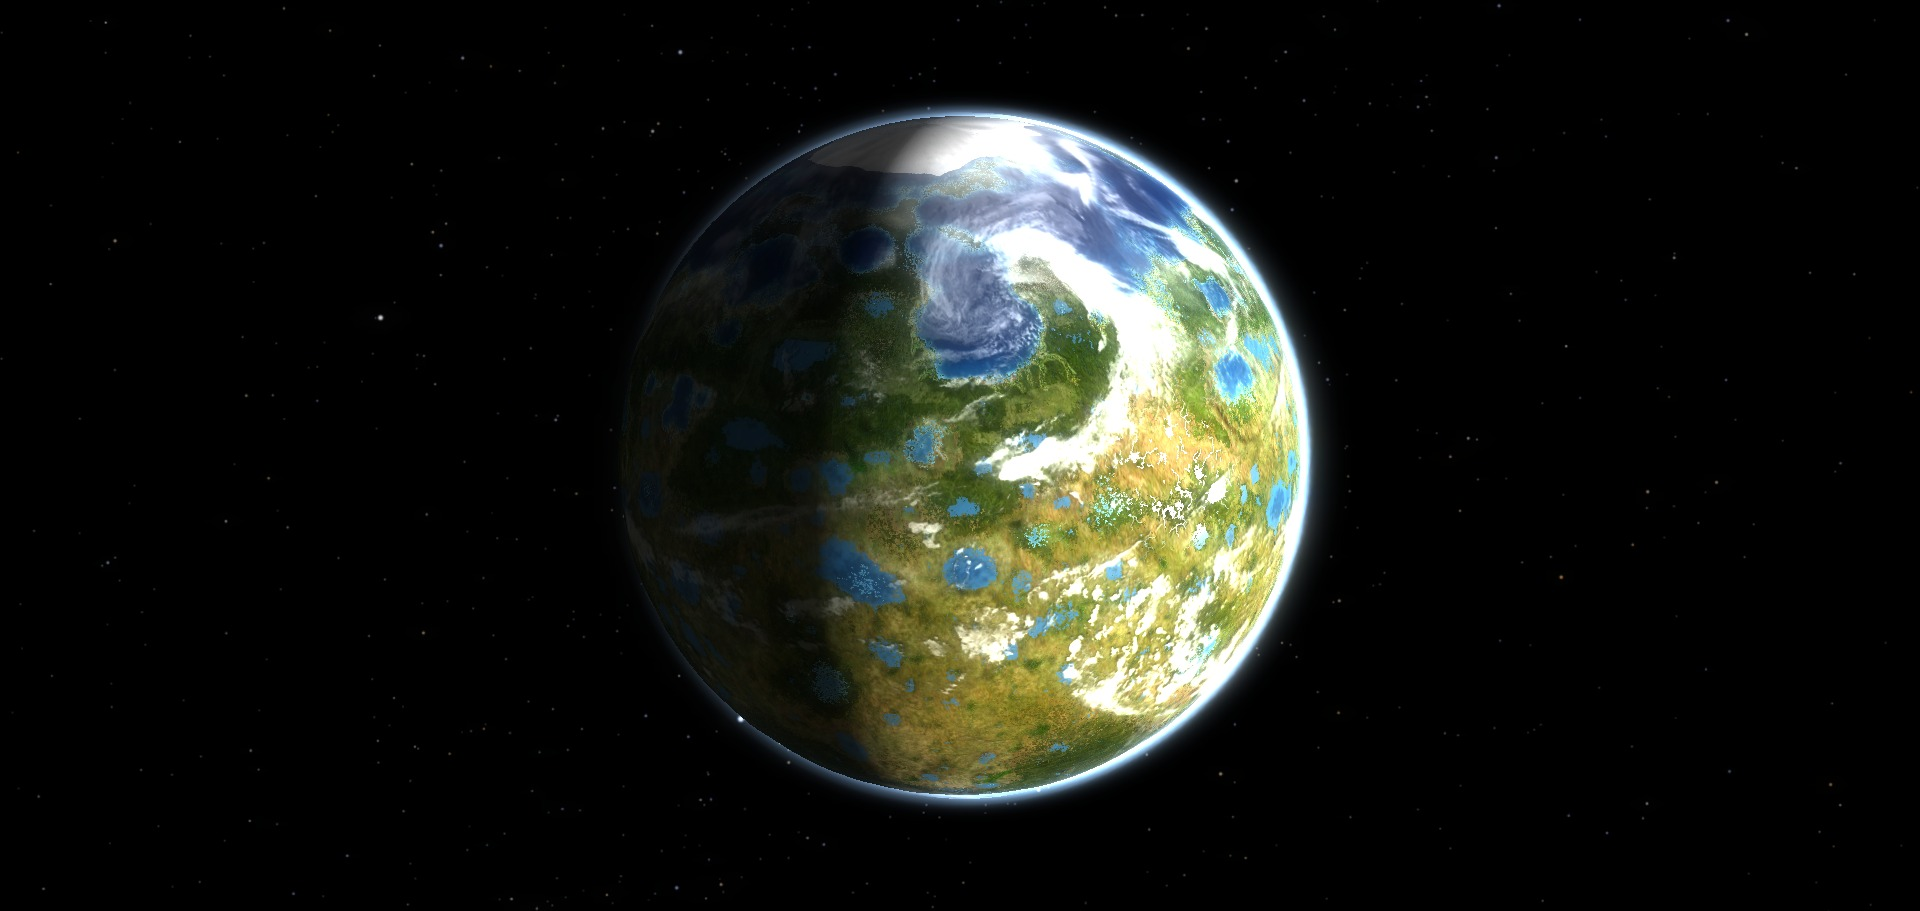 terraformed asteroids - photo #2